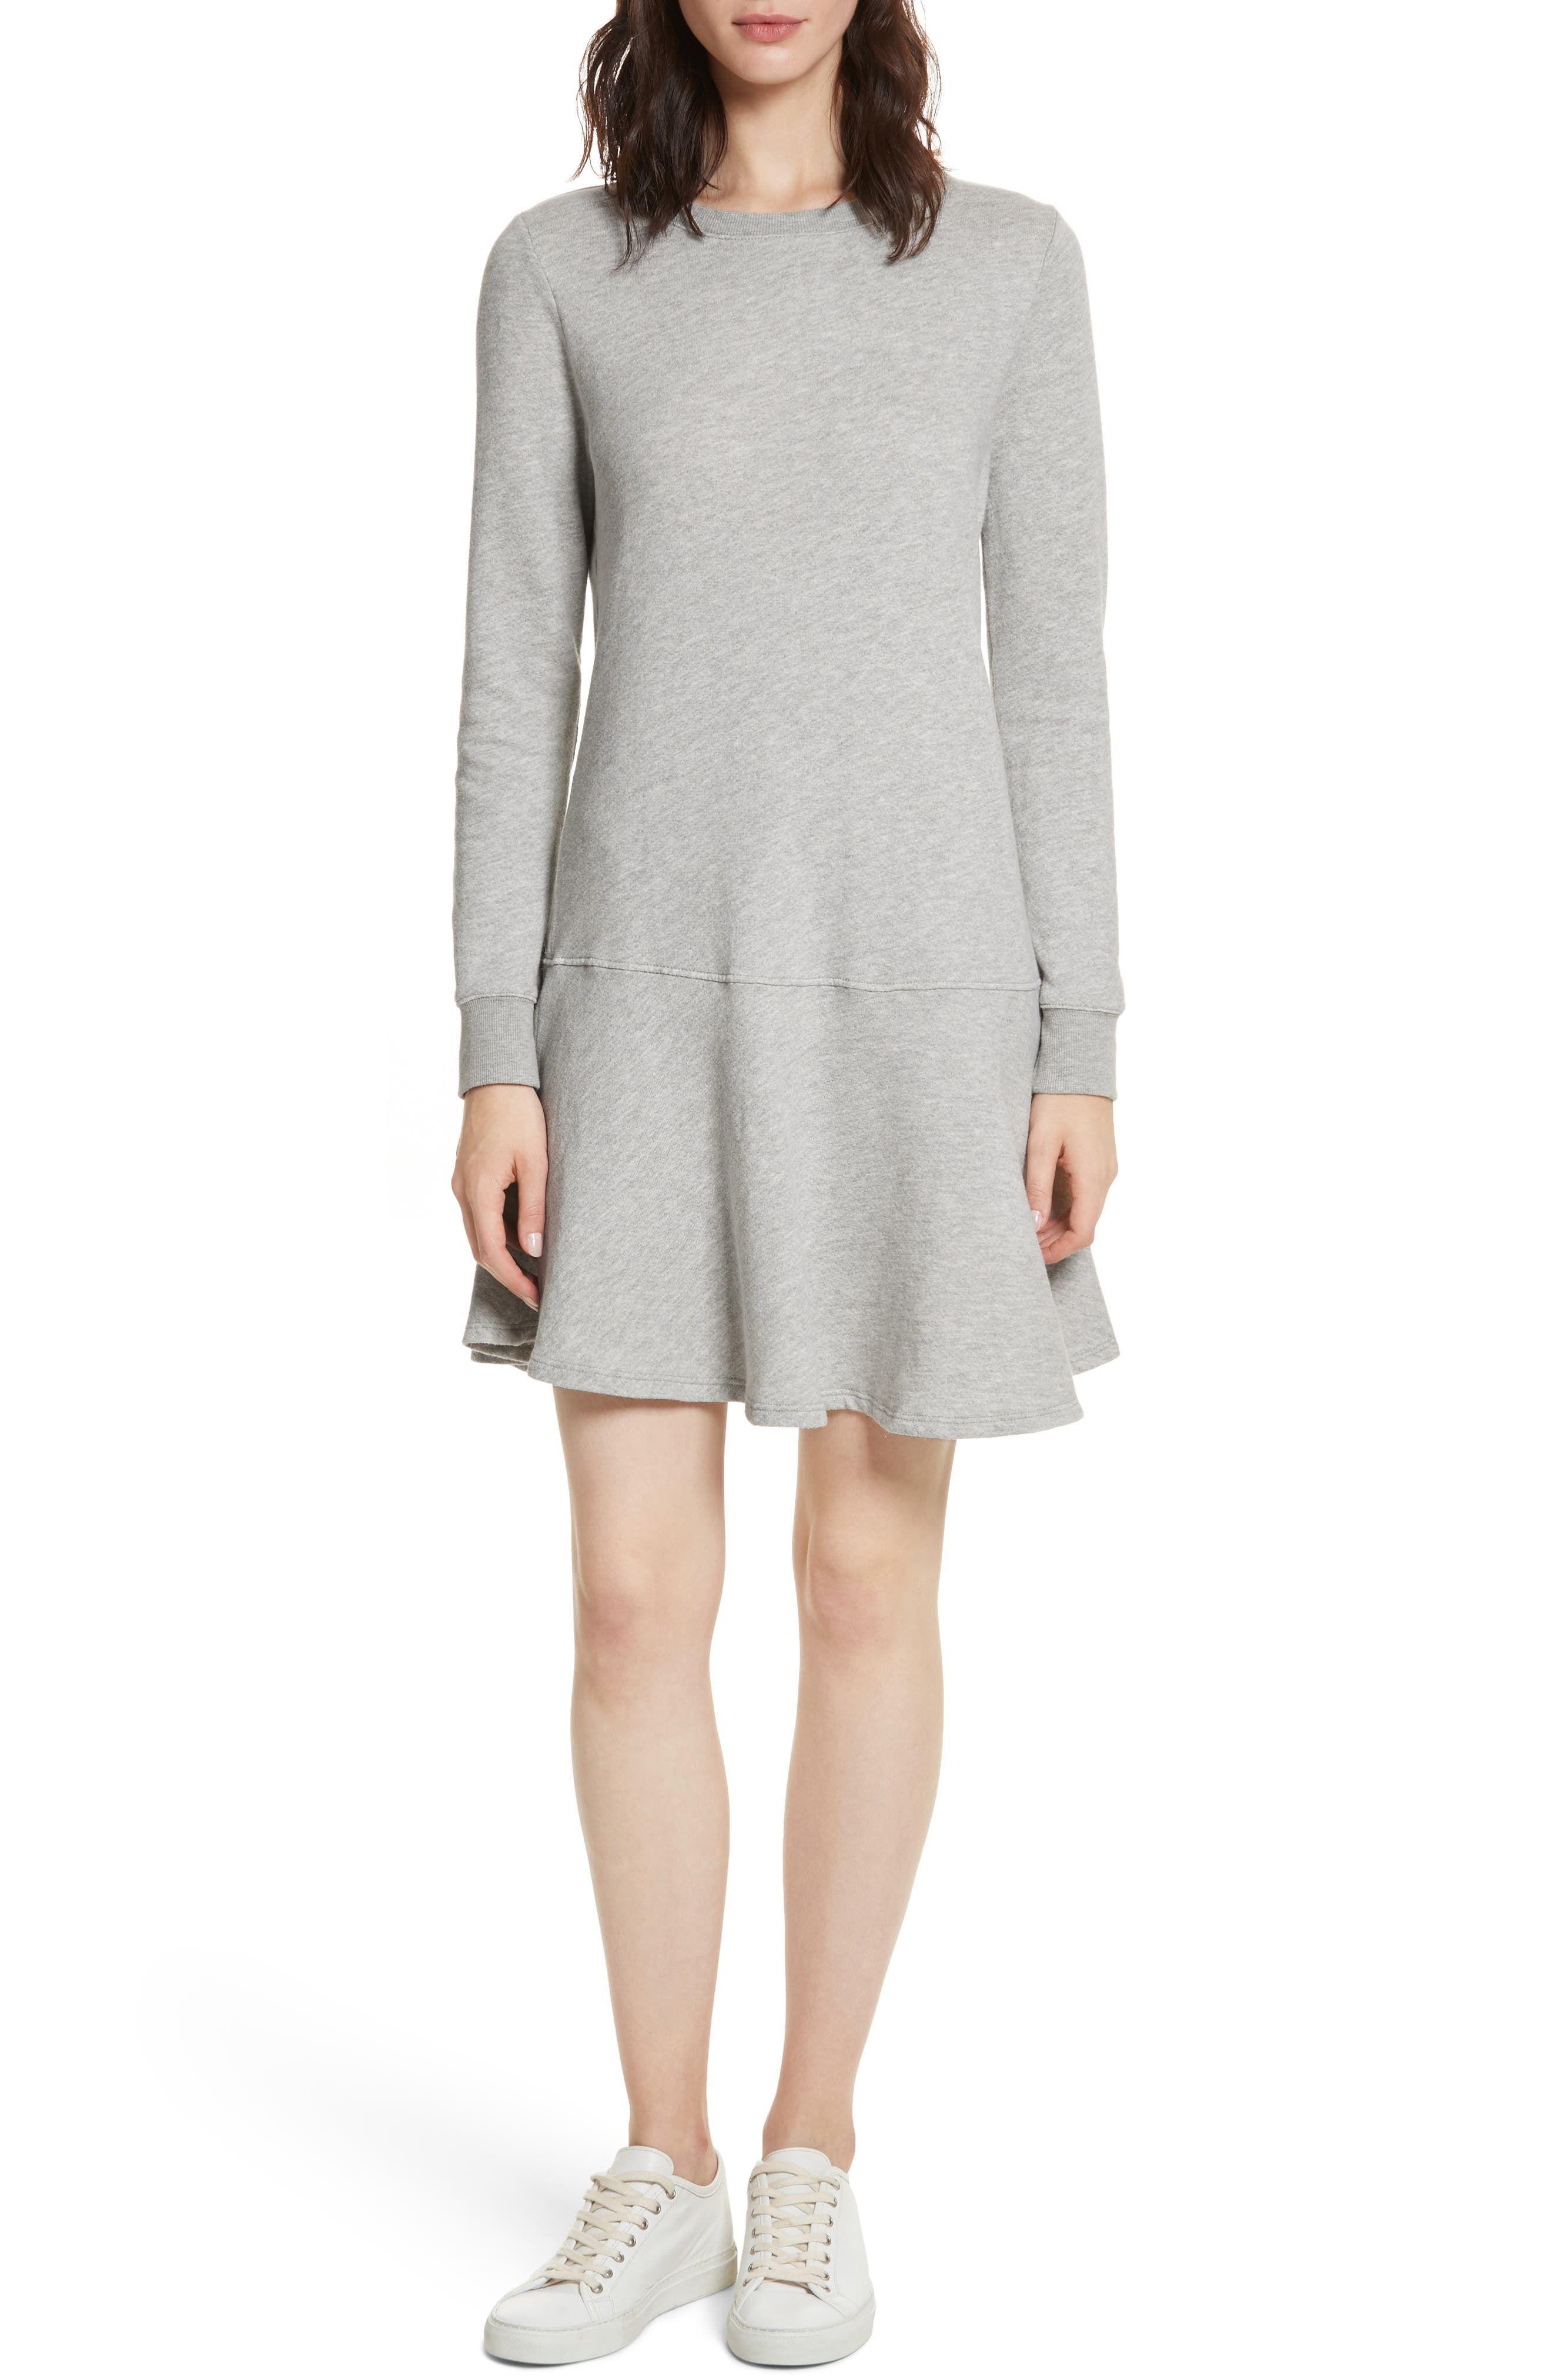 Runna French Terry A-Line Dress,                         Main,                         color, 033